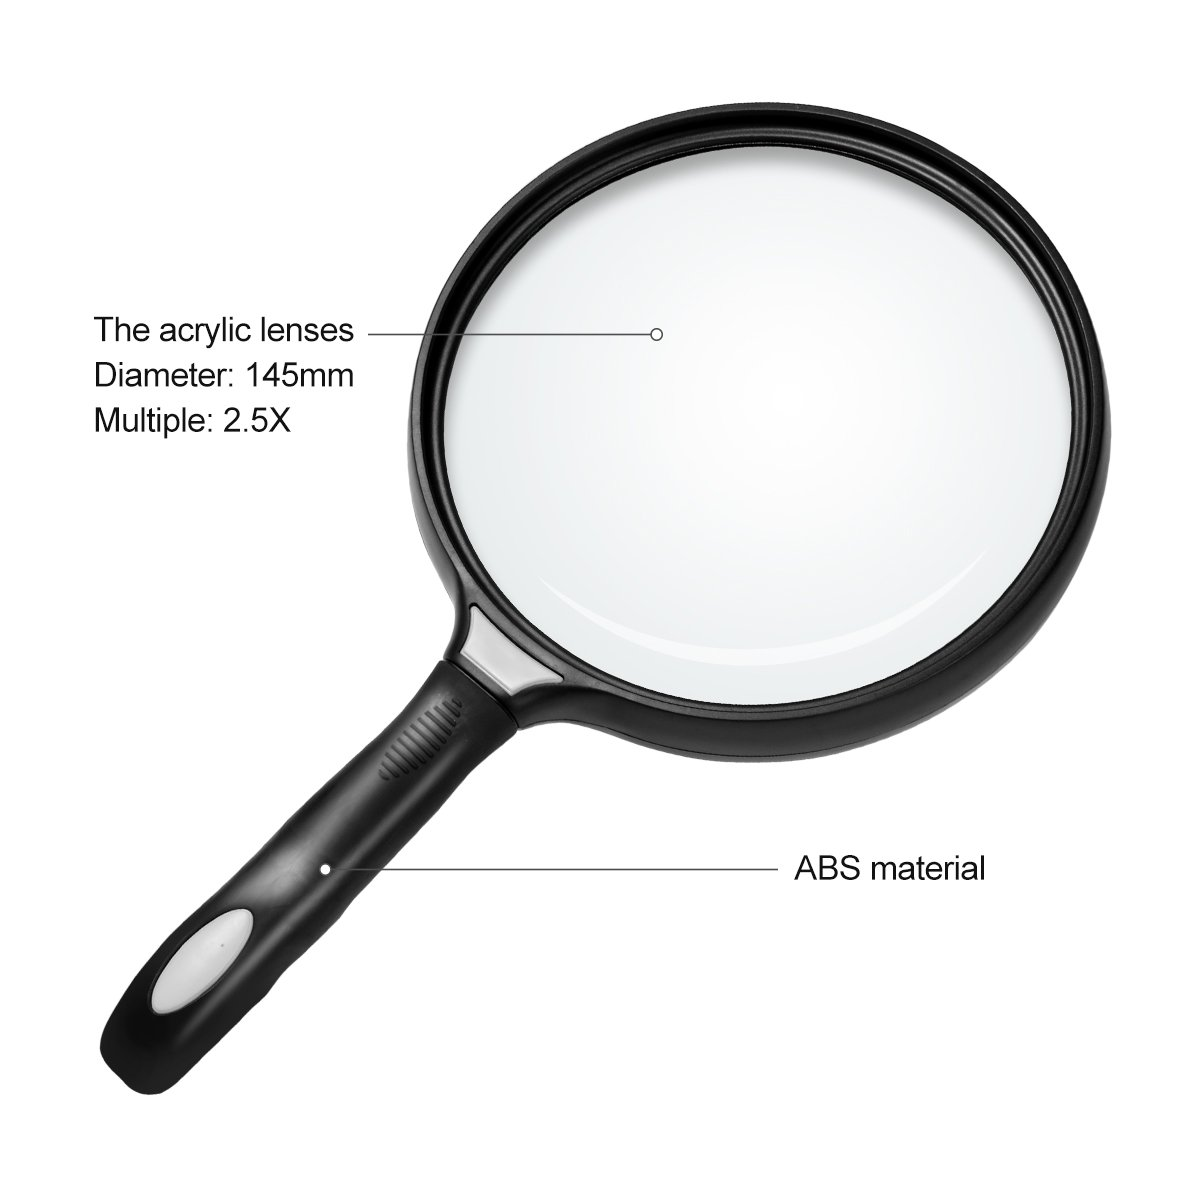 c9ed26062414 Bear Outdoor 5.5 inch Extra Large Handheld Magnifying Glass 2.5X  Illuminated Magnifier Lens - Black